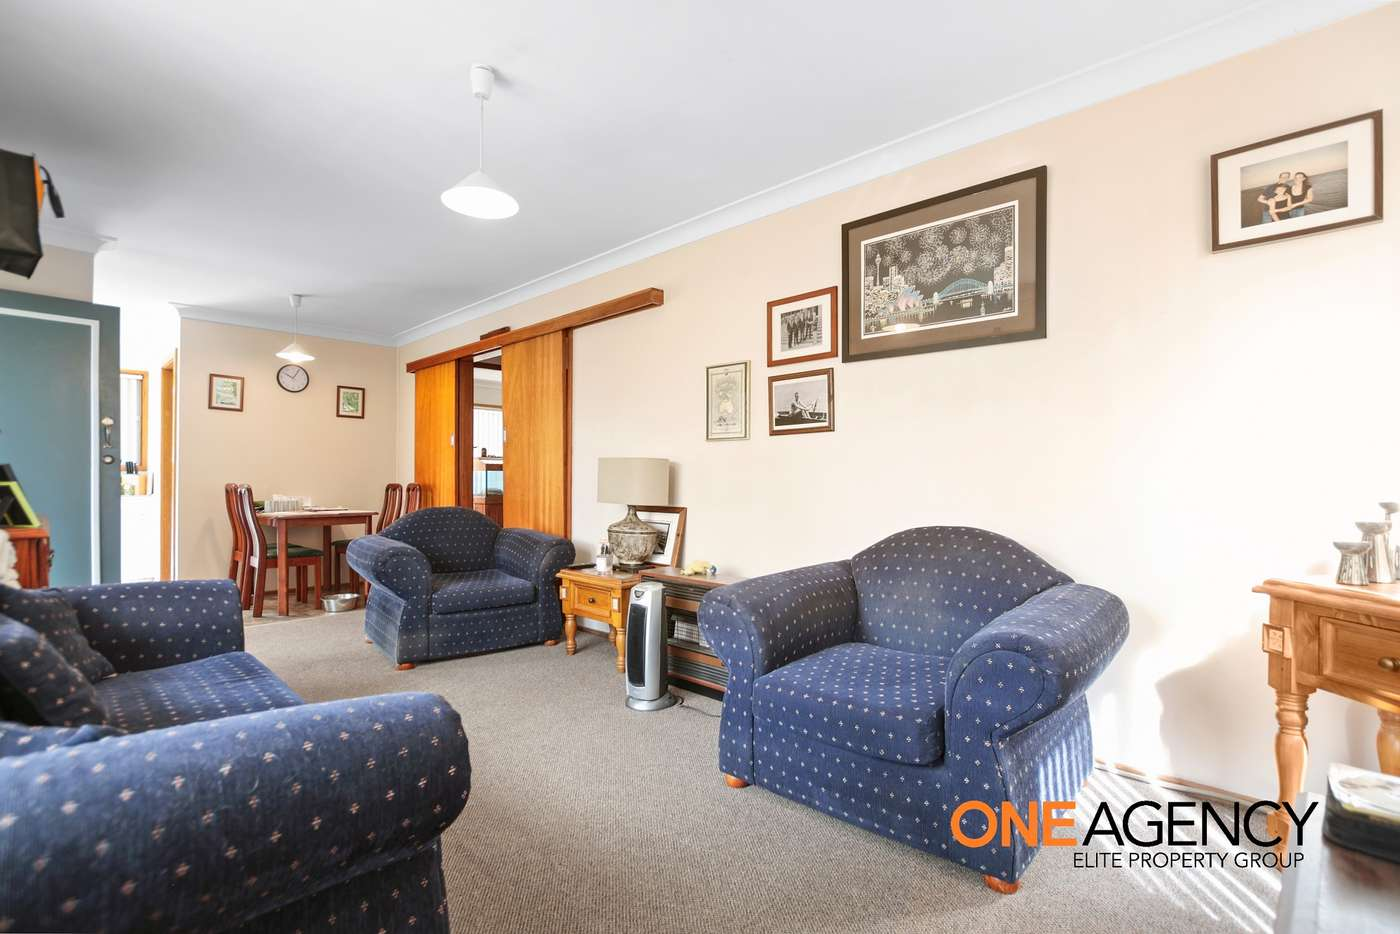 Sixth view of Homely house listing, 115 Elizabeth Drive, Vincentia NSW 2540